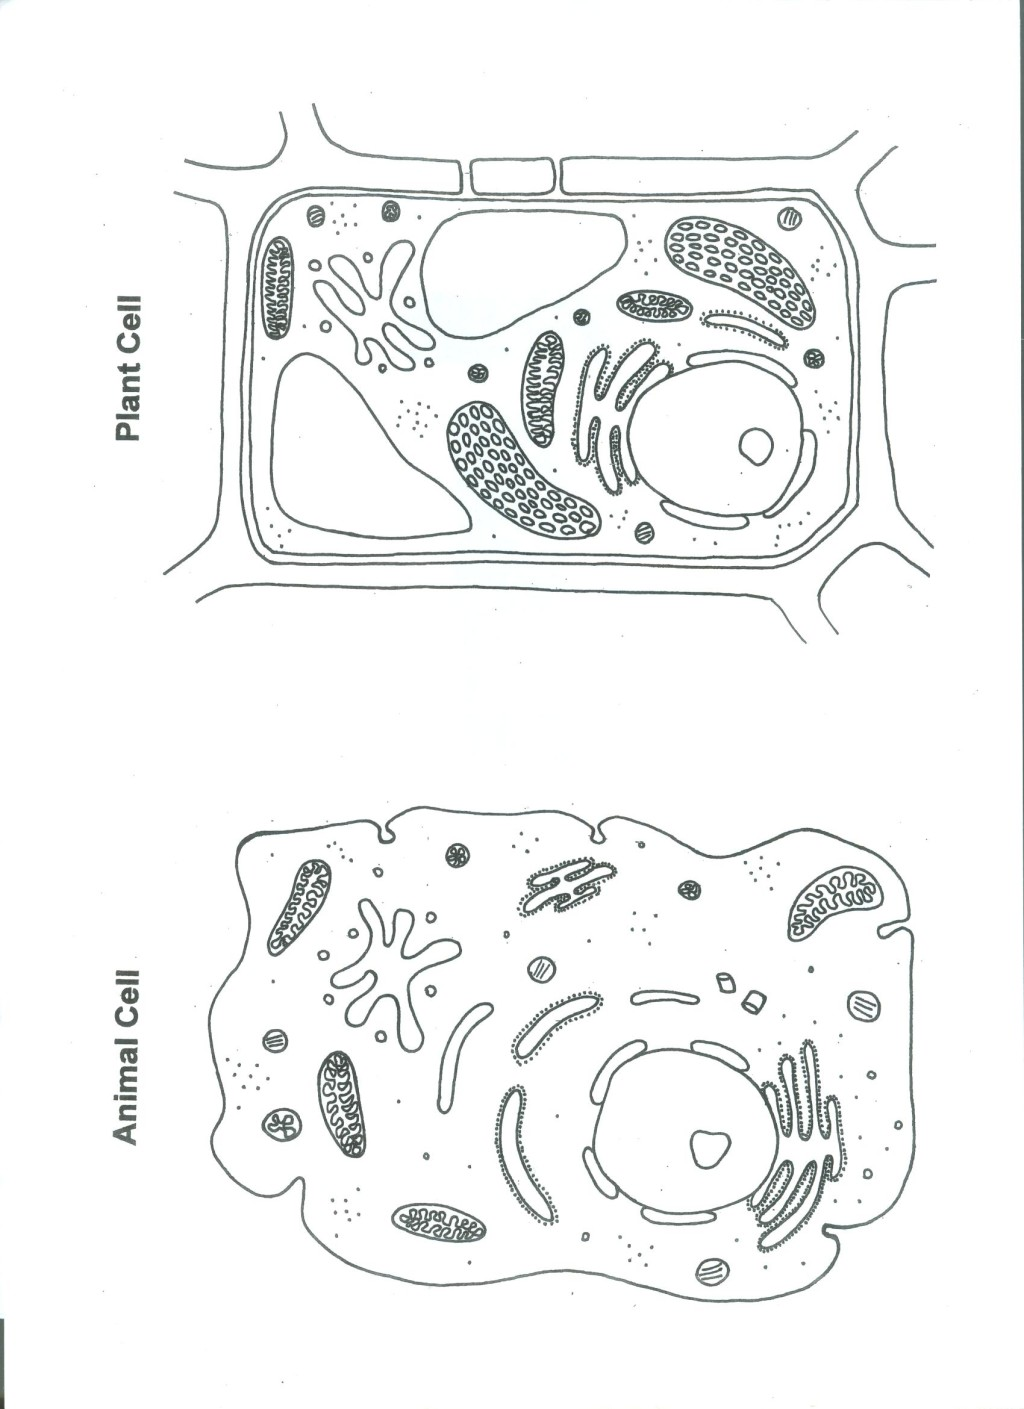 plant and animal cells worksheet - Khafre